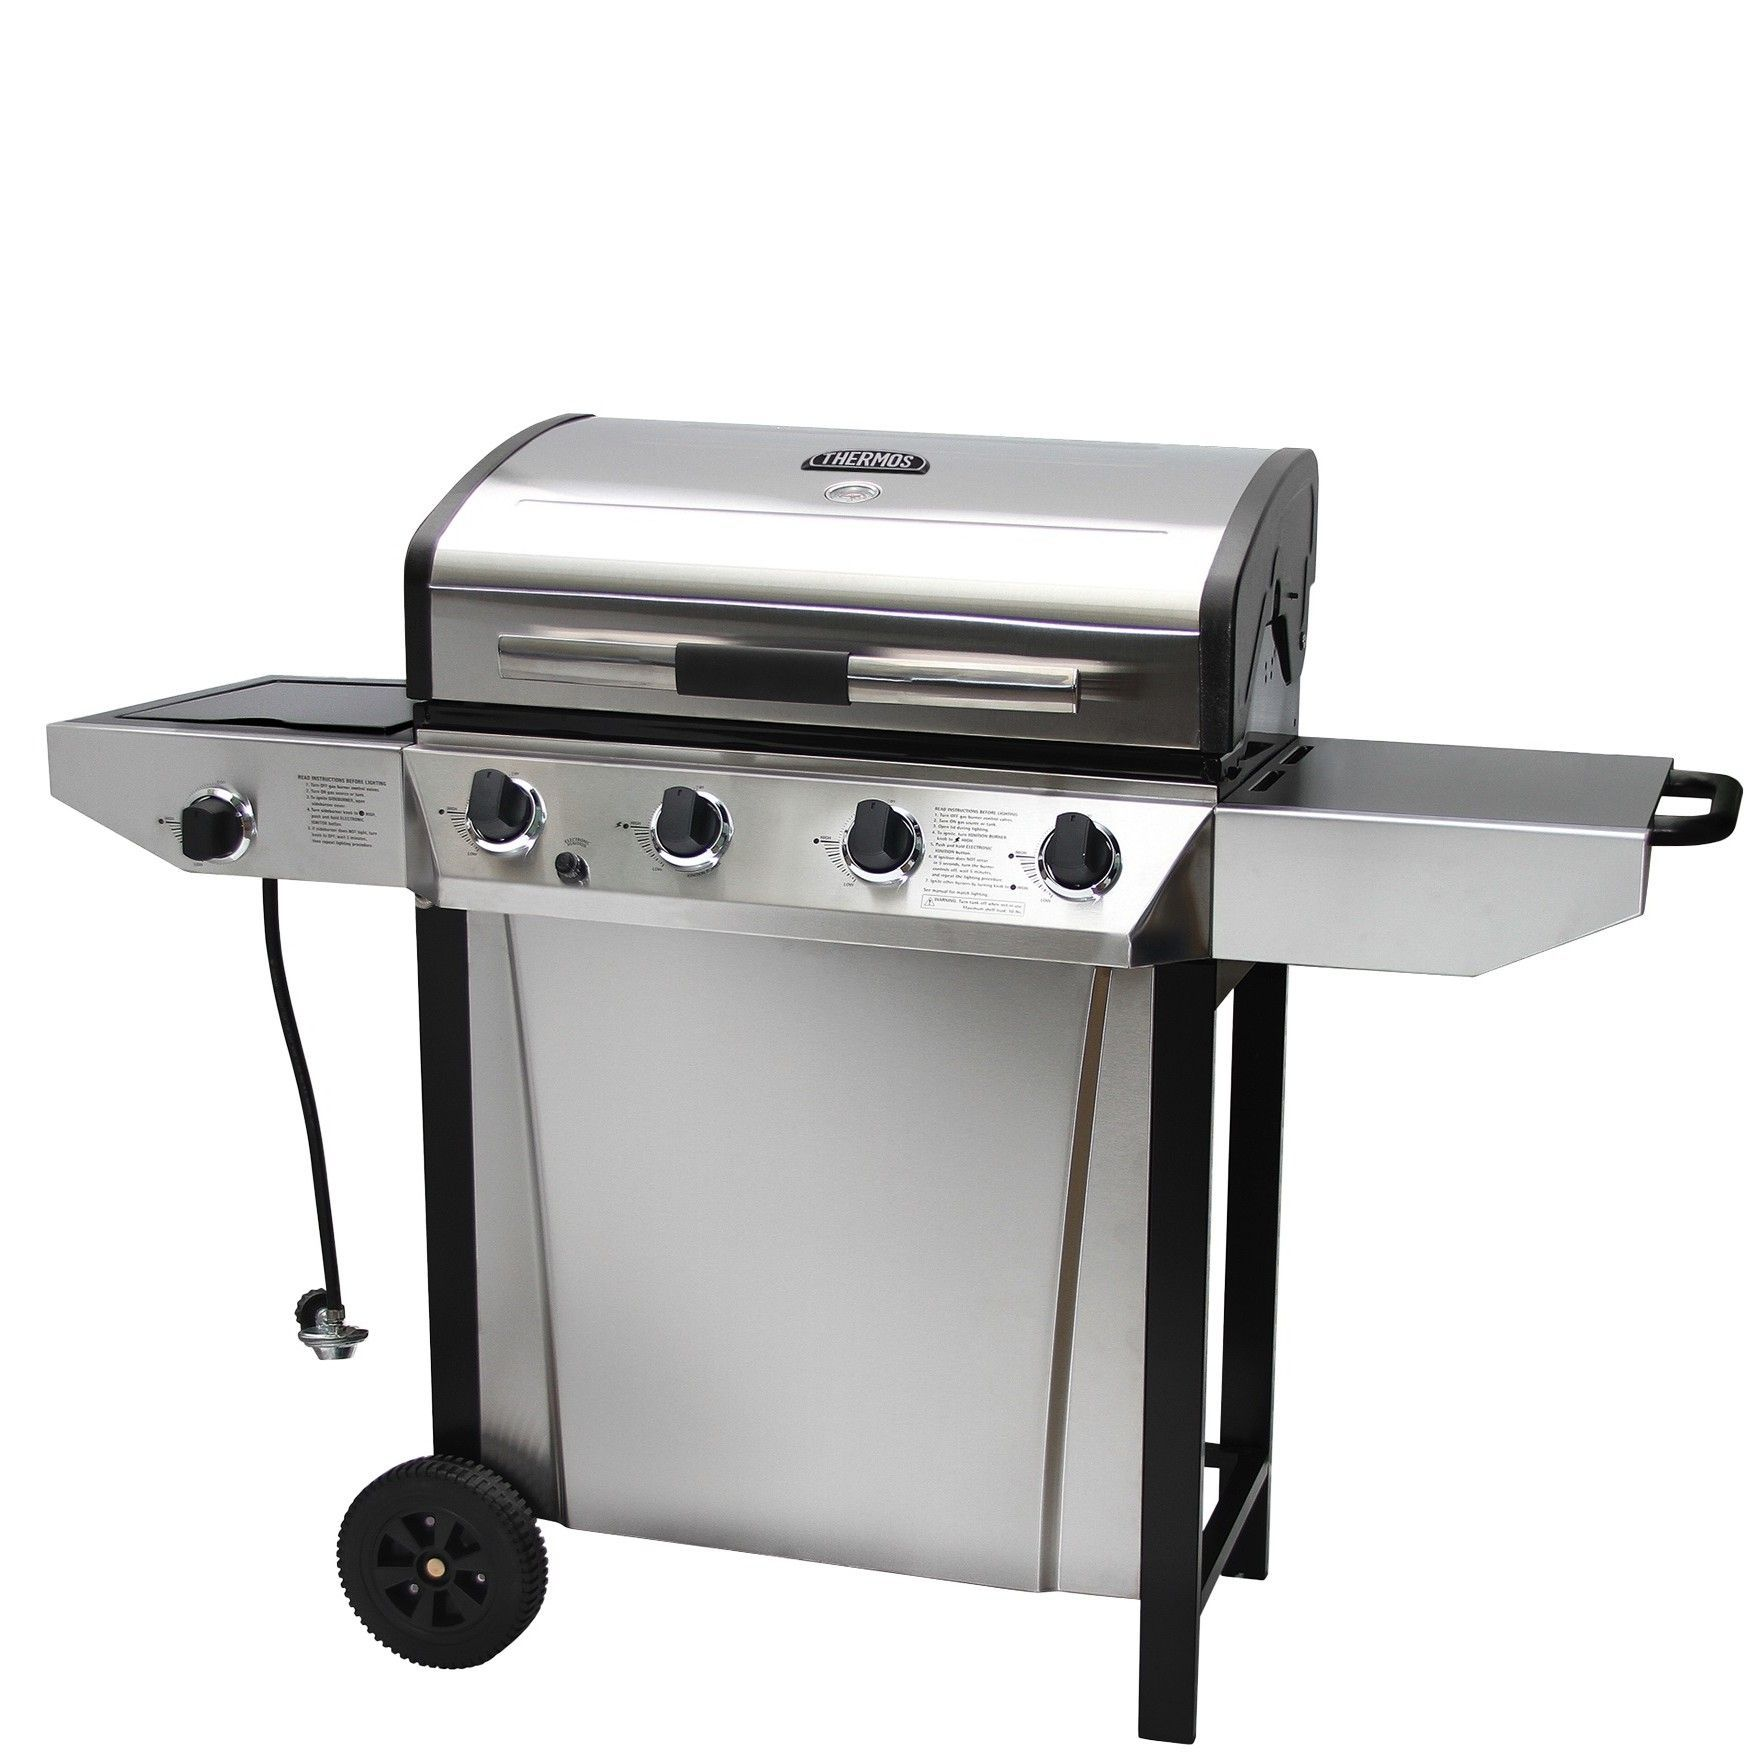 Thermos 4-Burner Propane Gas Grill with Side Shelves | Propane gas ...